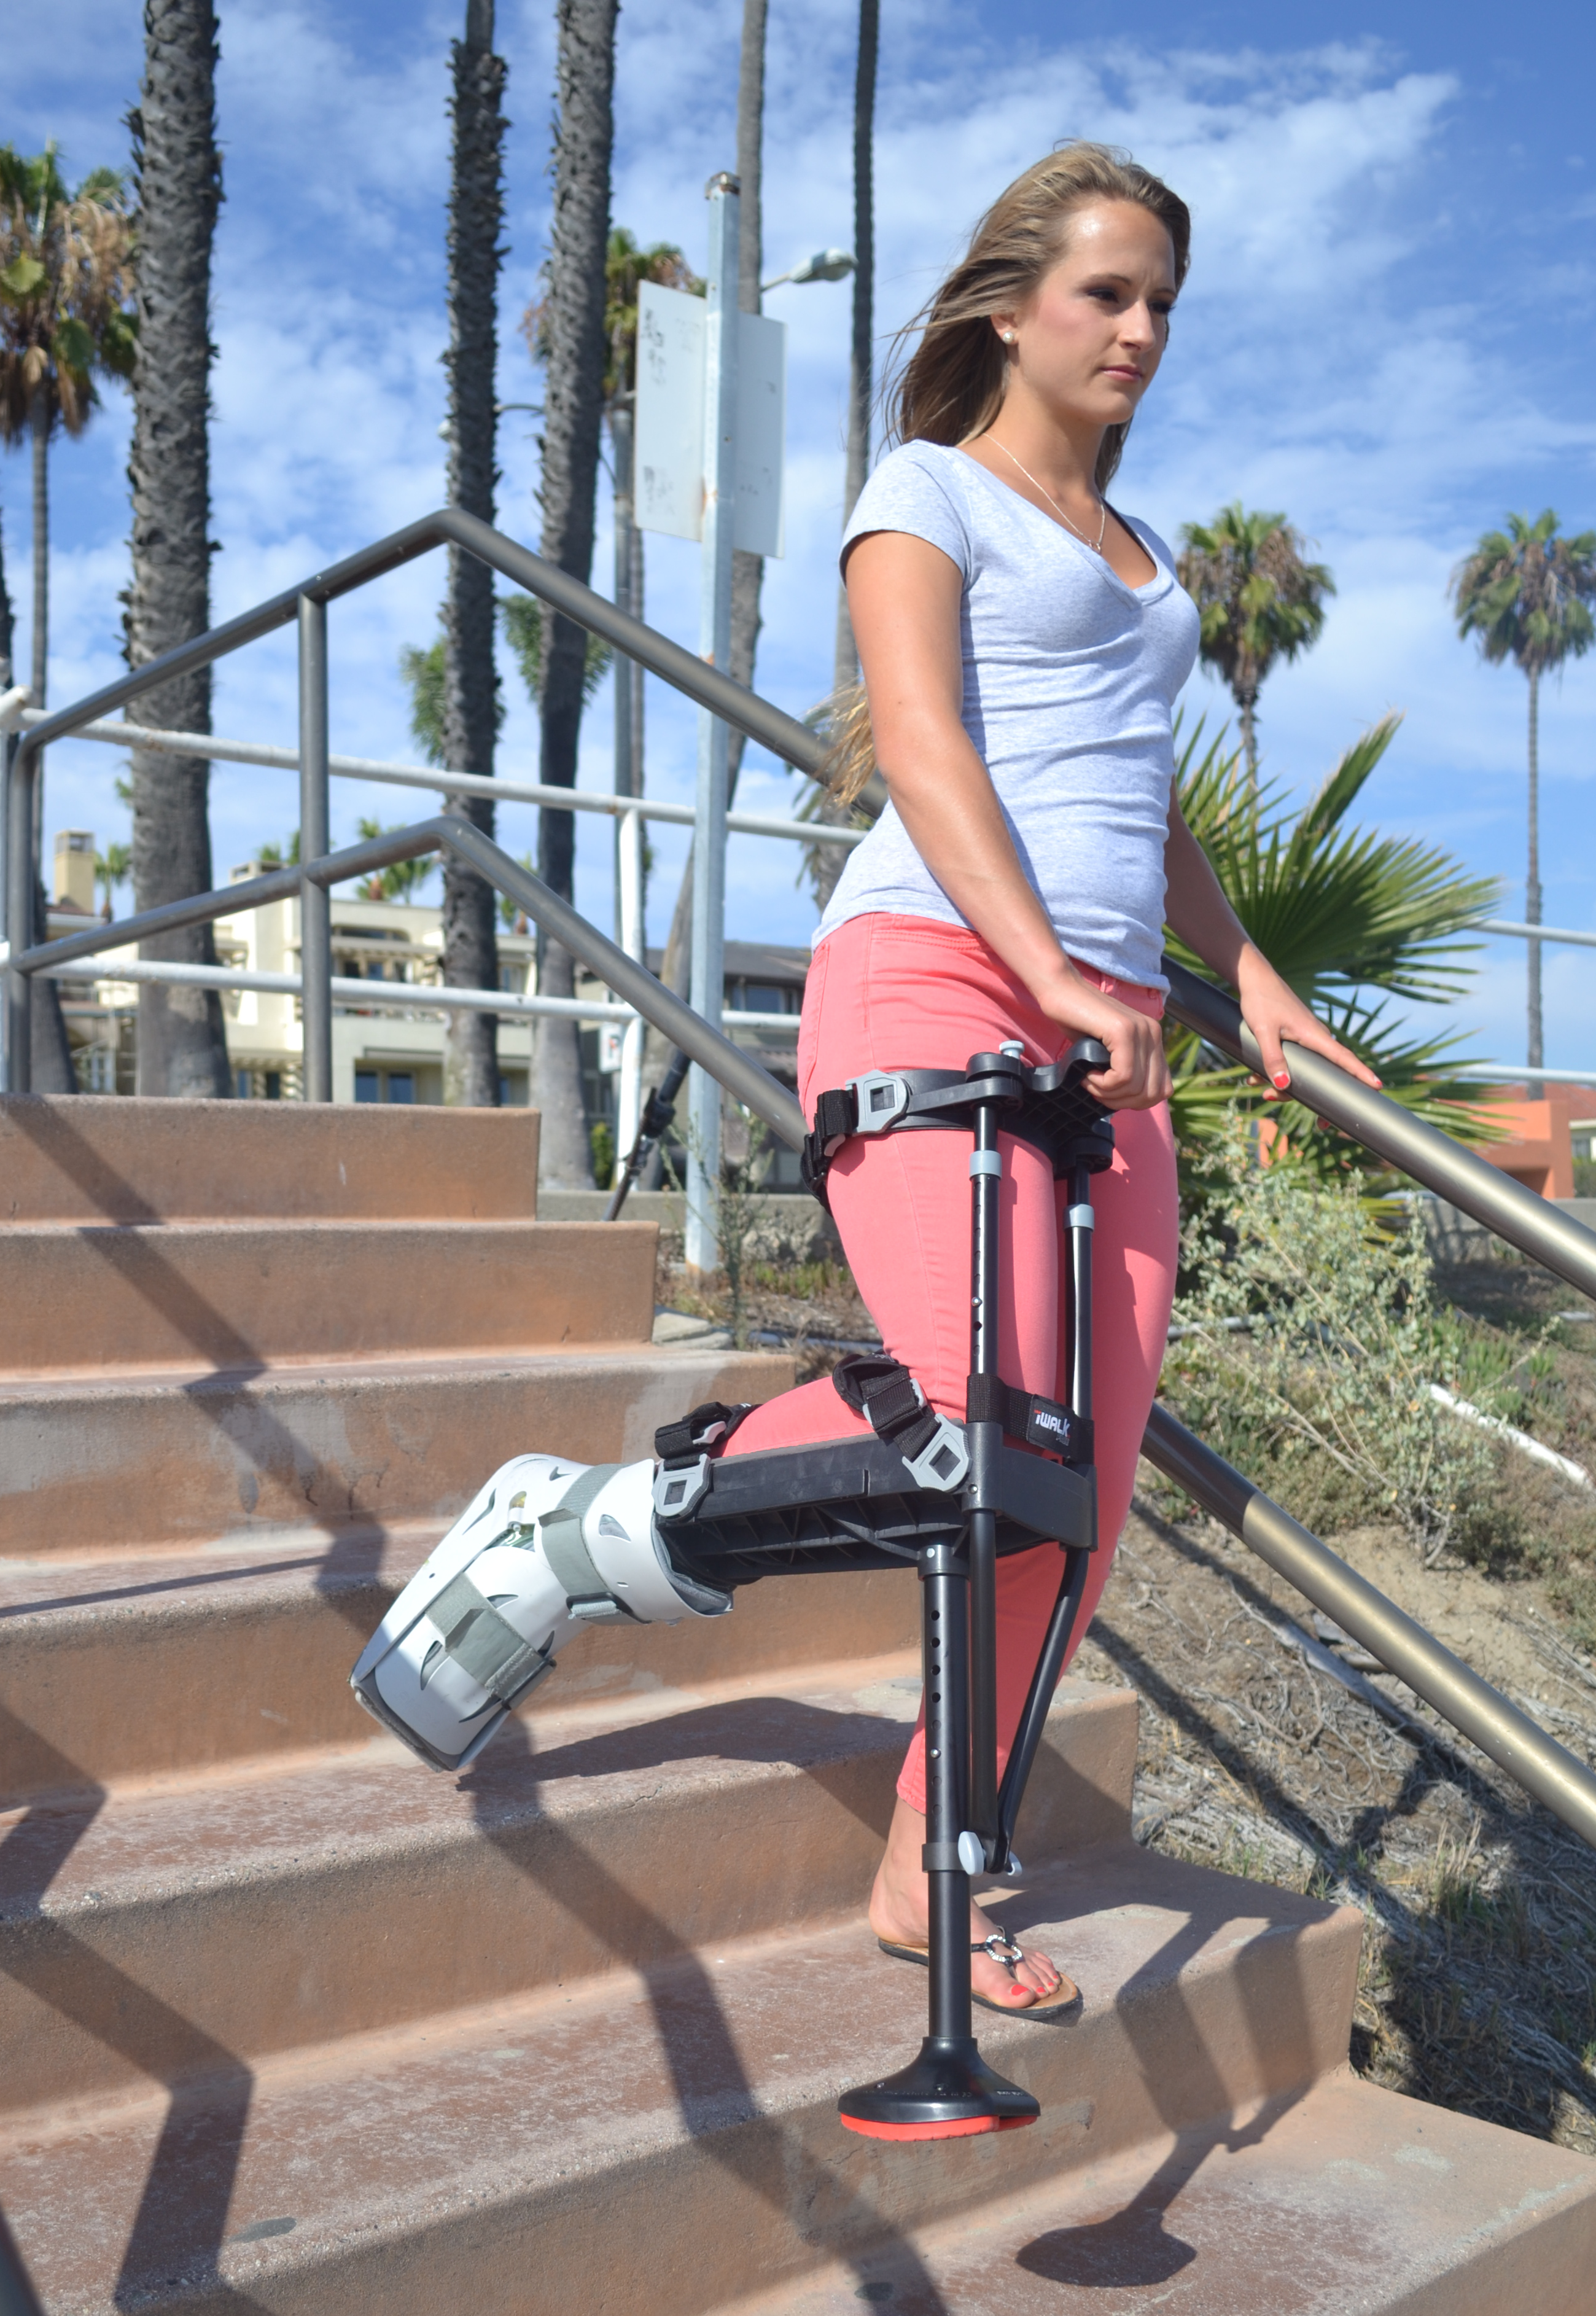 iwalk hands-free crutches